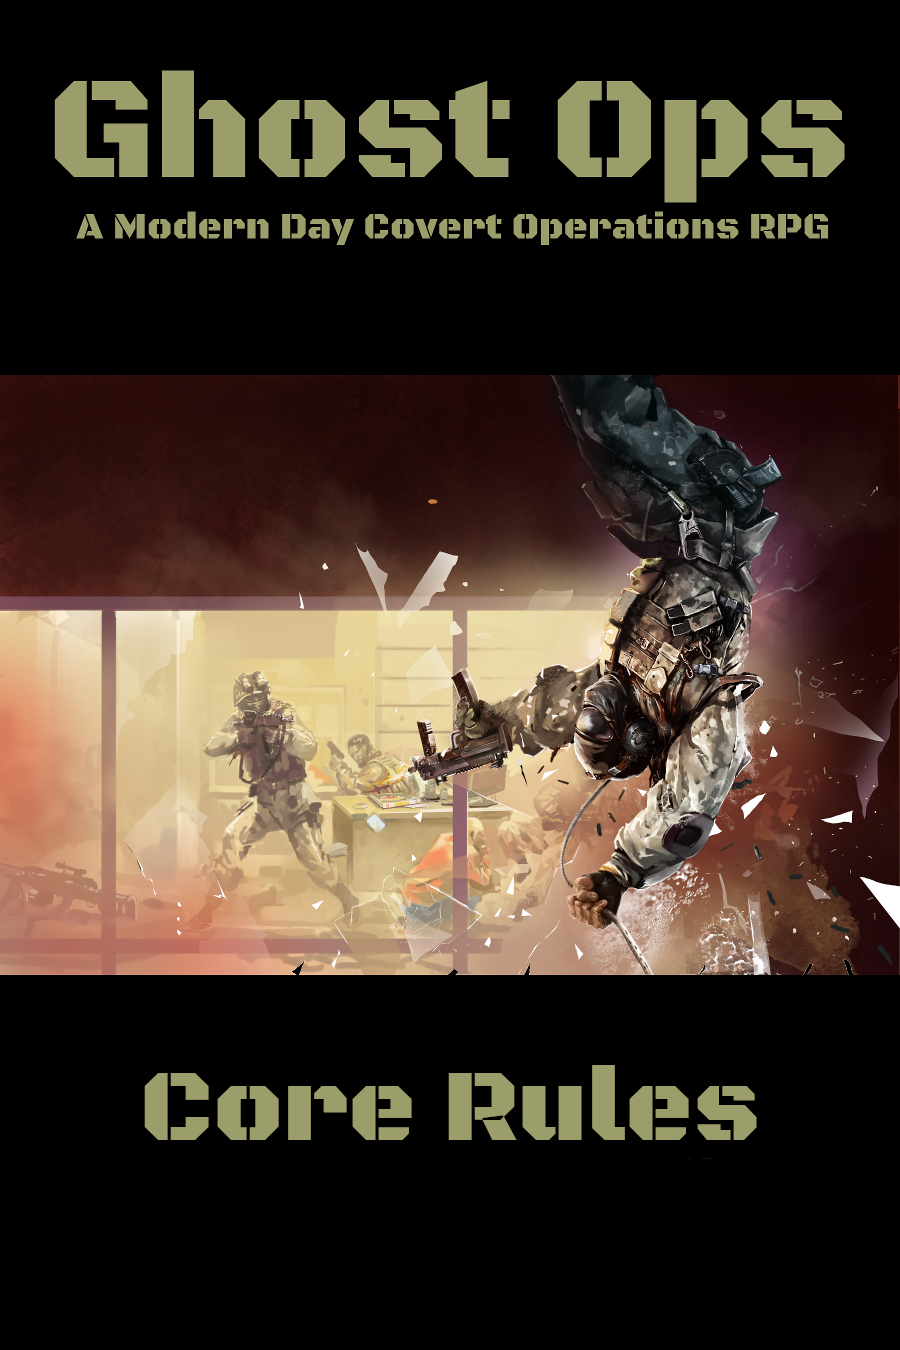 Ghost Ops - A Modern Day Covert Ops RPG